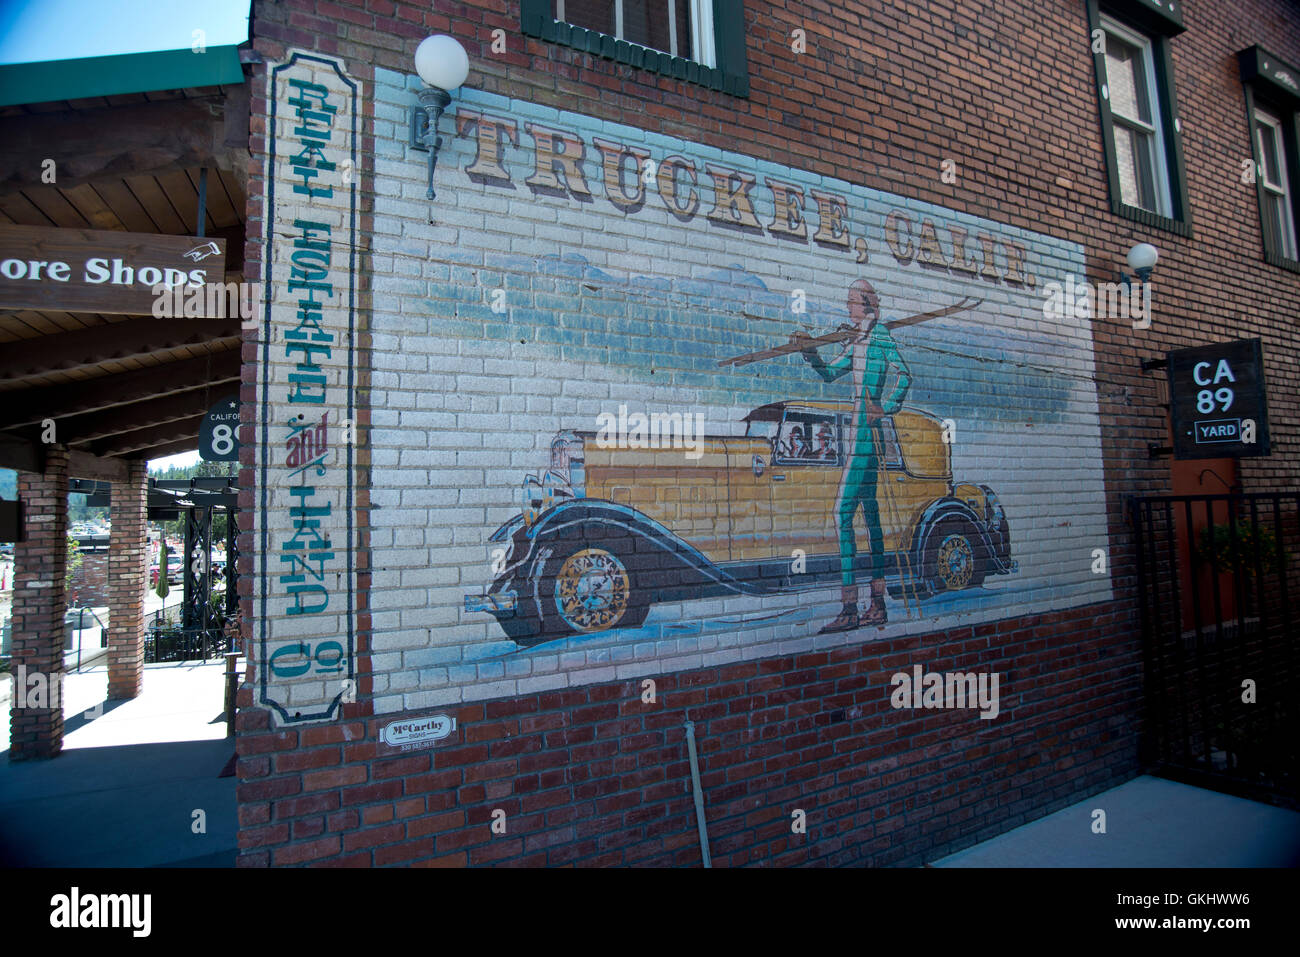 Vintage marketing sign on brick wall in Truckee, California - Stock Image